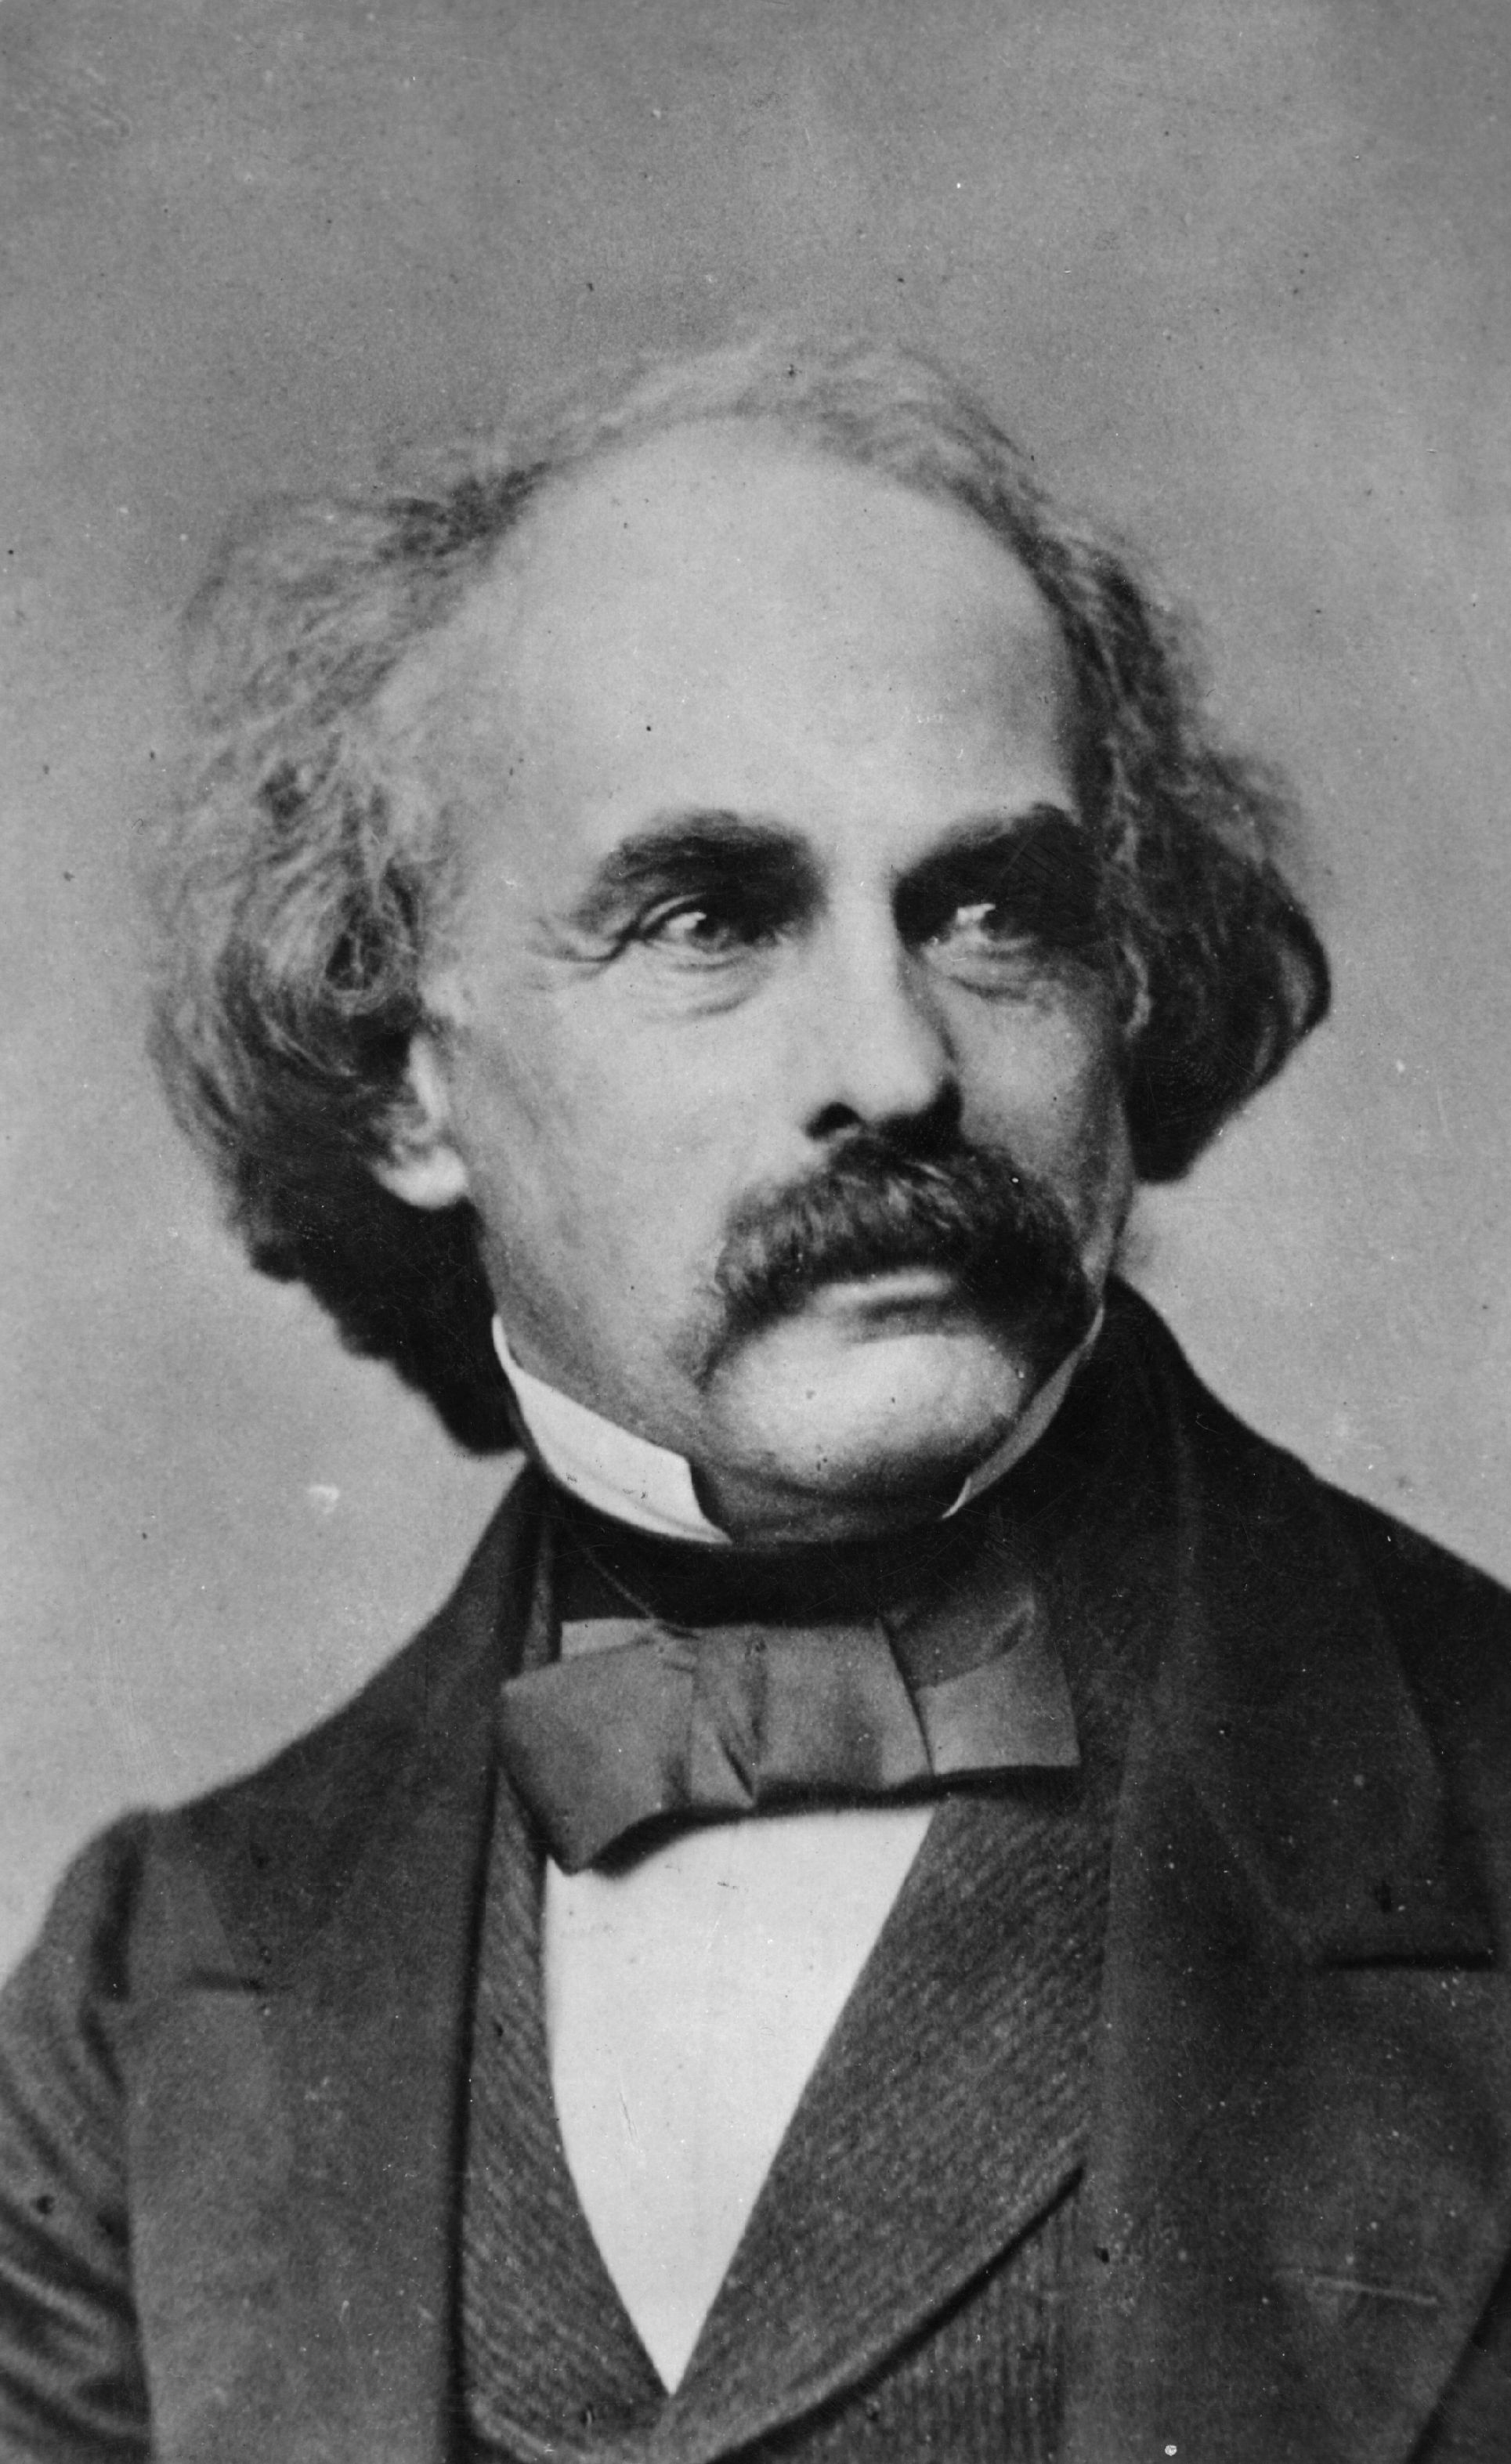 a biography of the man nathaniel hawthorne Barrow bookstore presents an audio reading of nathaniel hawthorne's the birthmark hawthorne's story of a man's dark search for perfection was first.